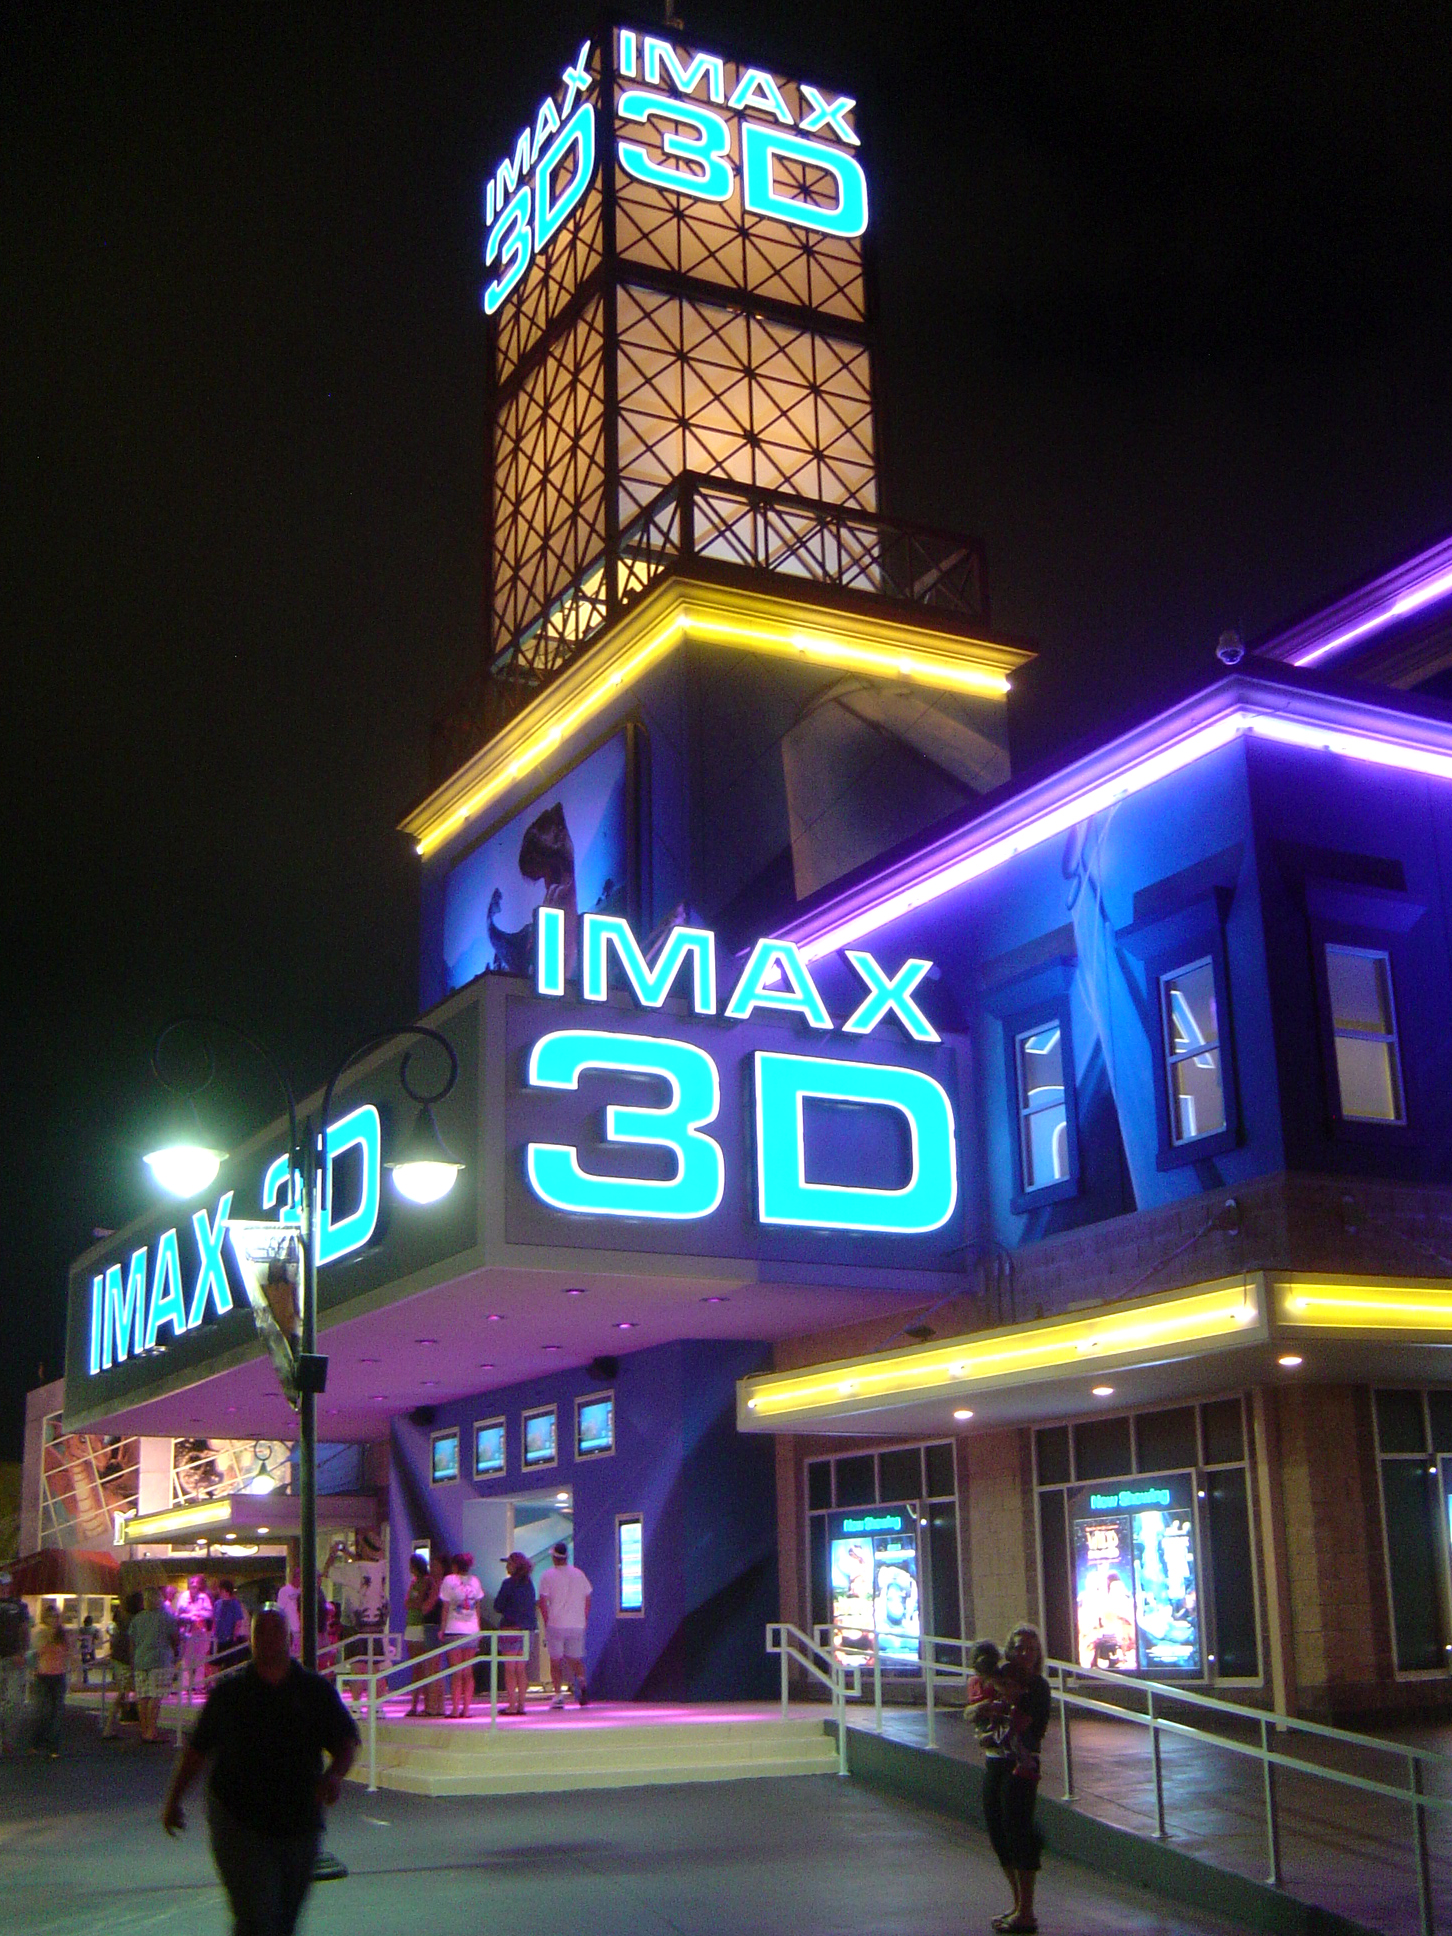 Description imax 3d